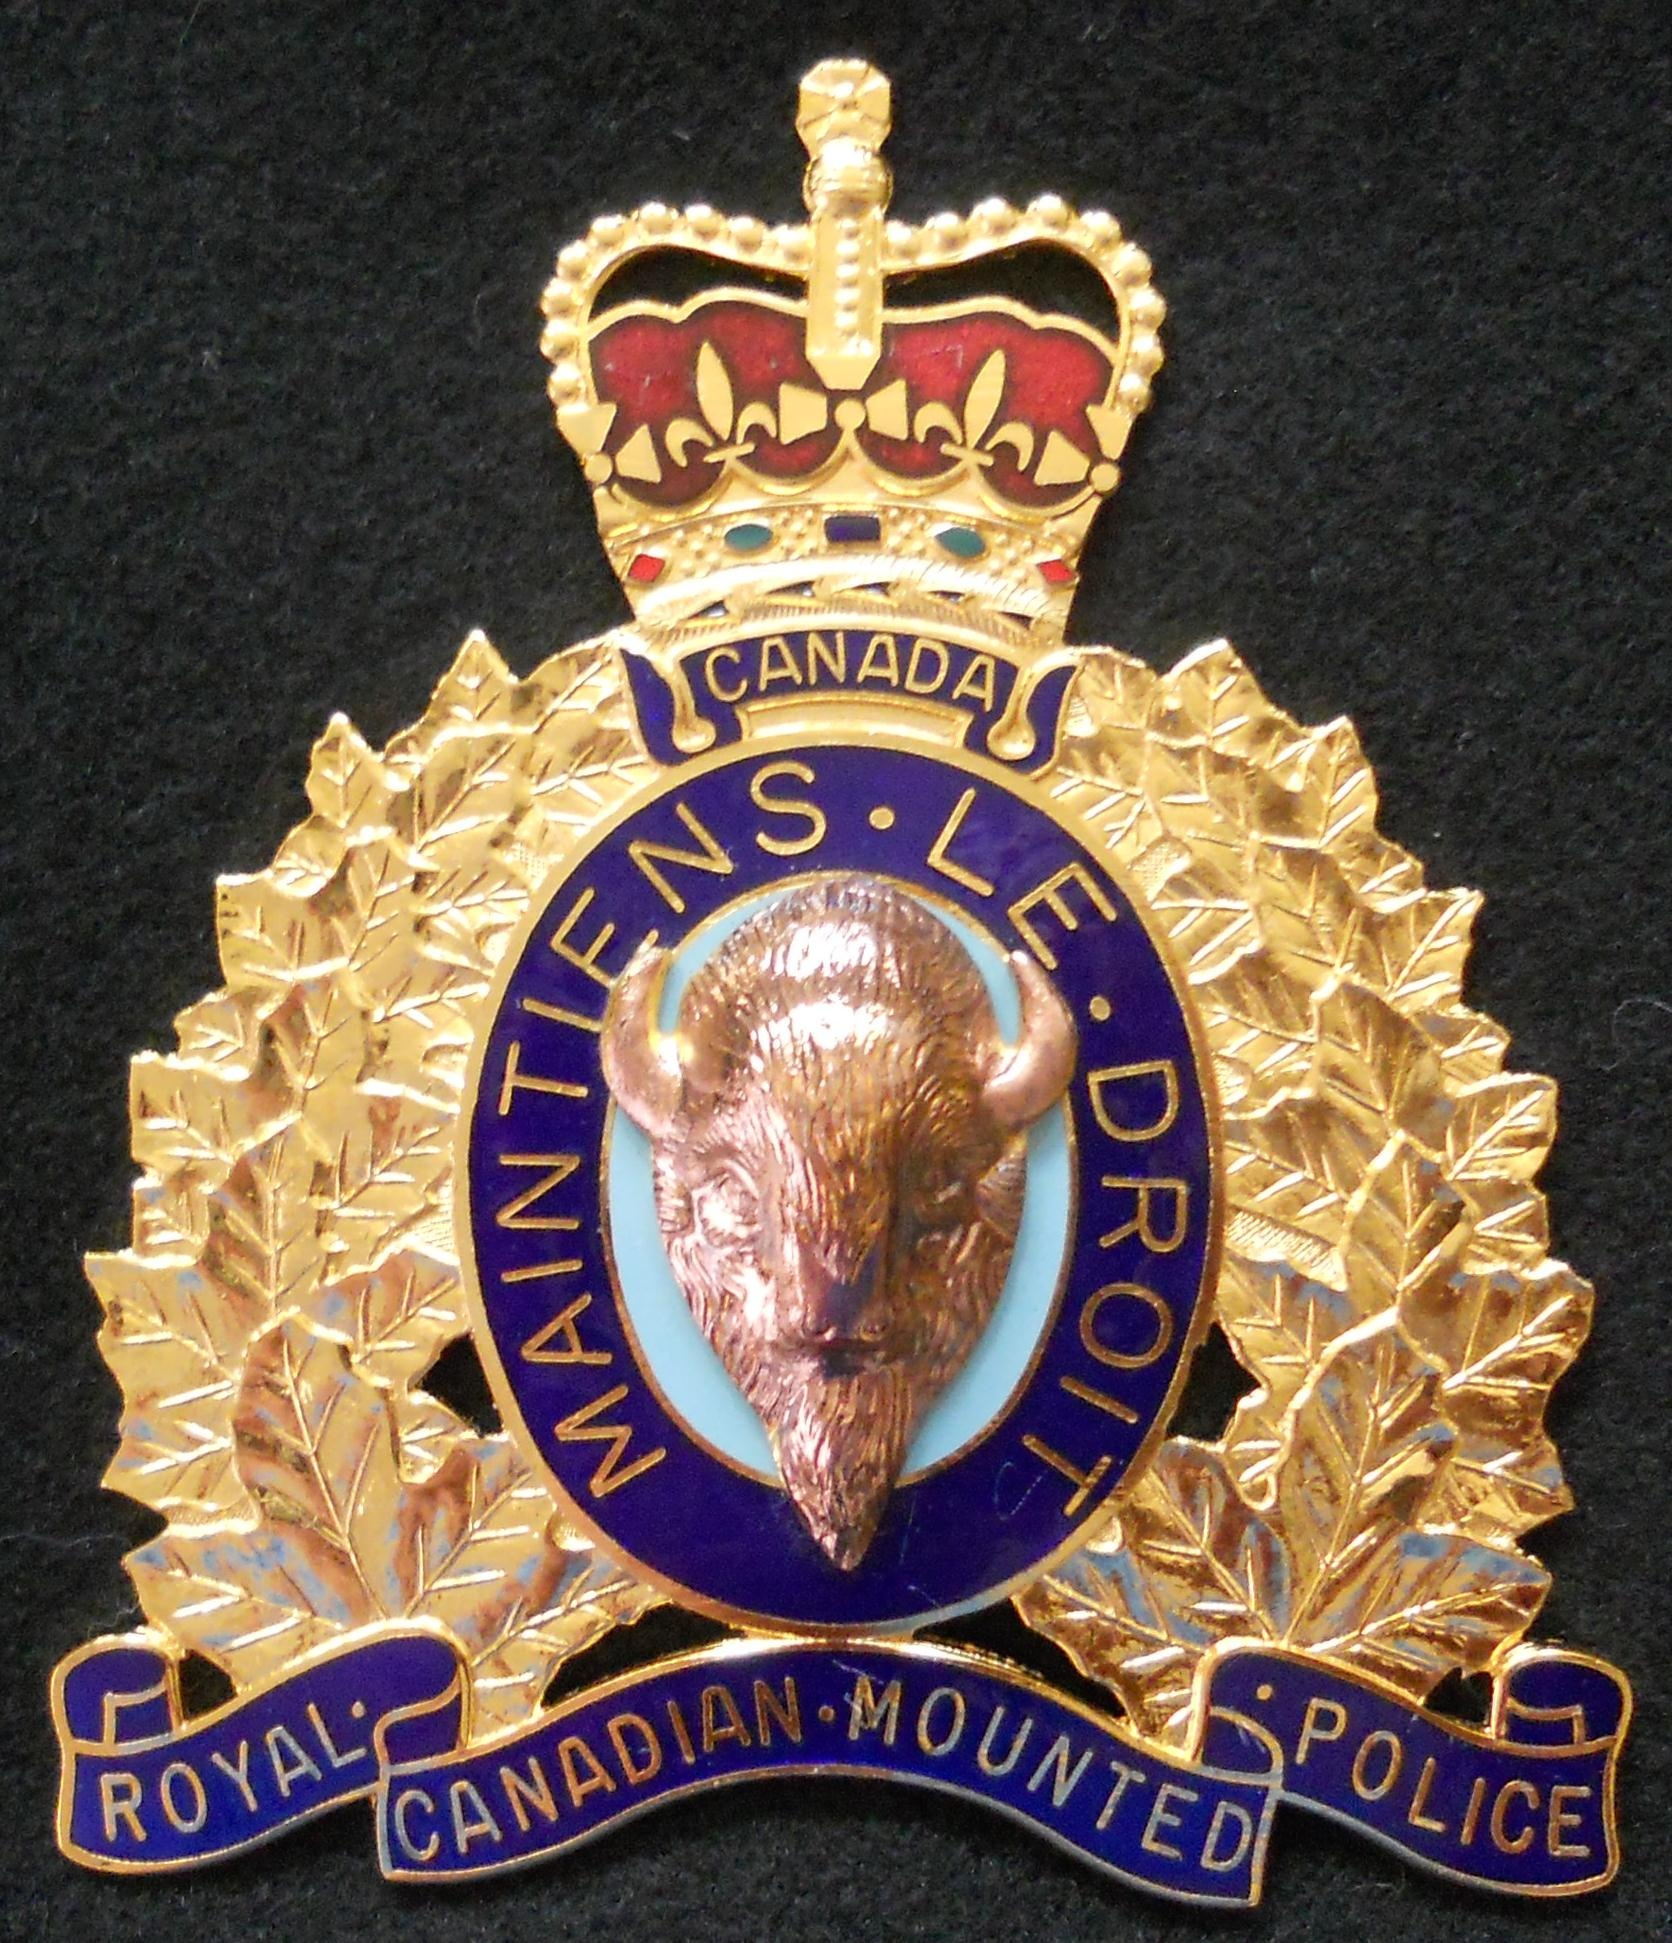 DEADLY CONFRONTATION ON THE WHITEFISH LAKE FIRST NATION